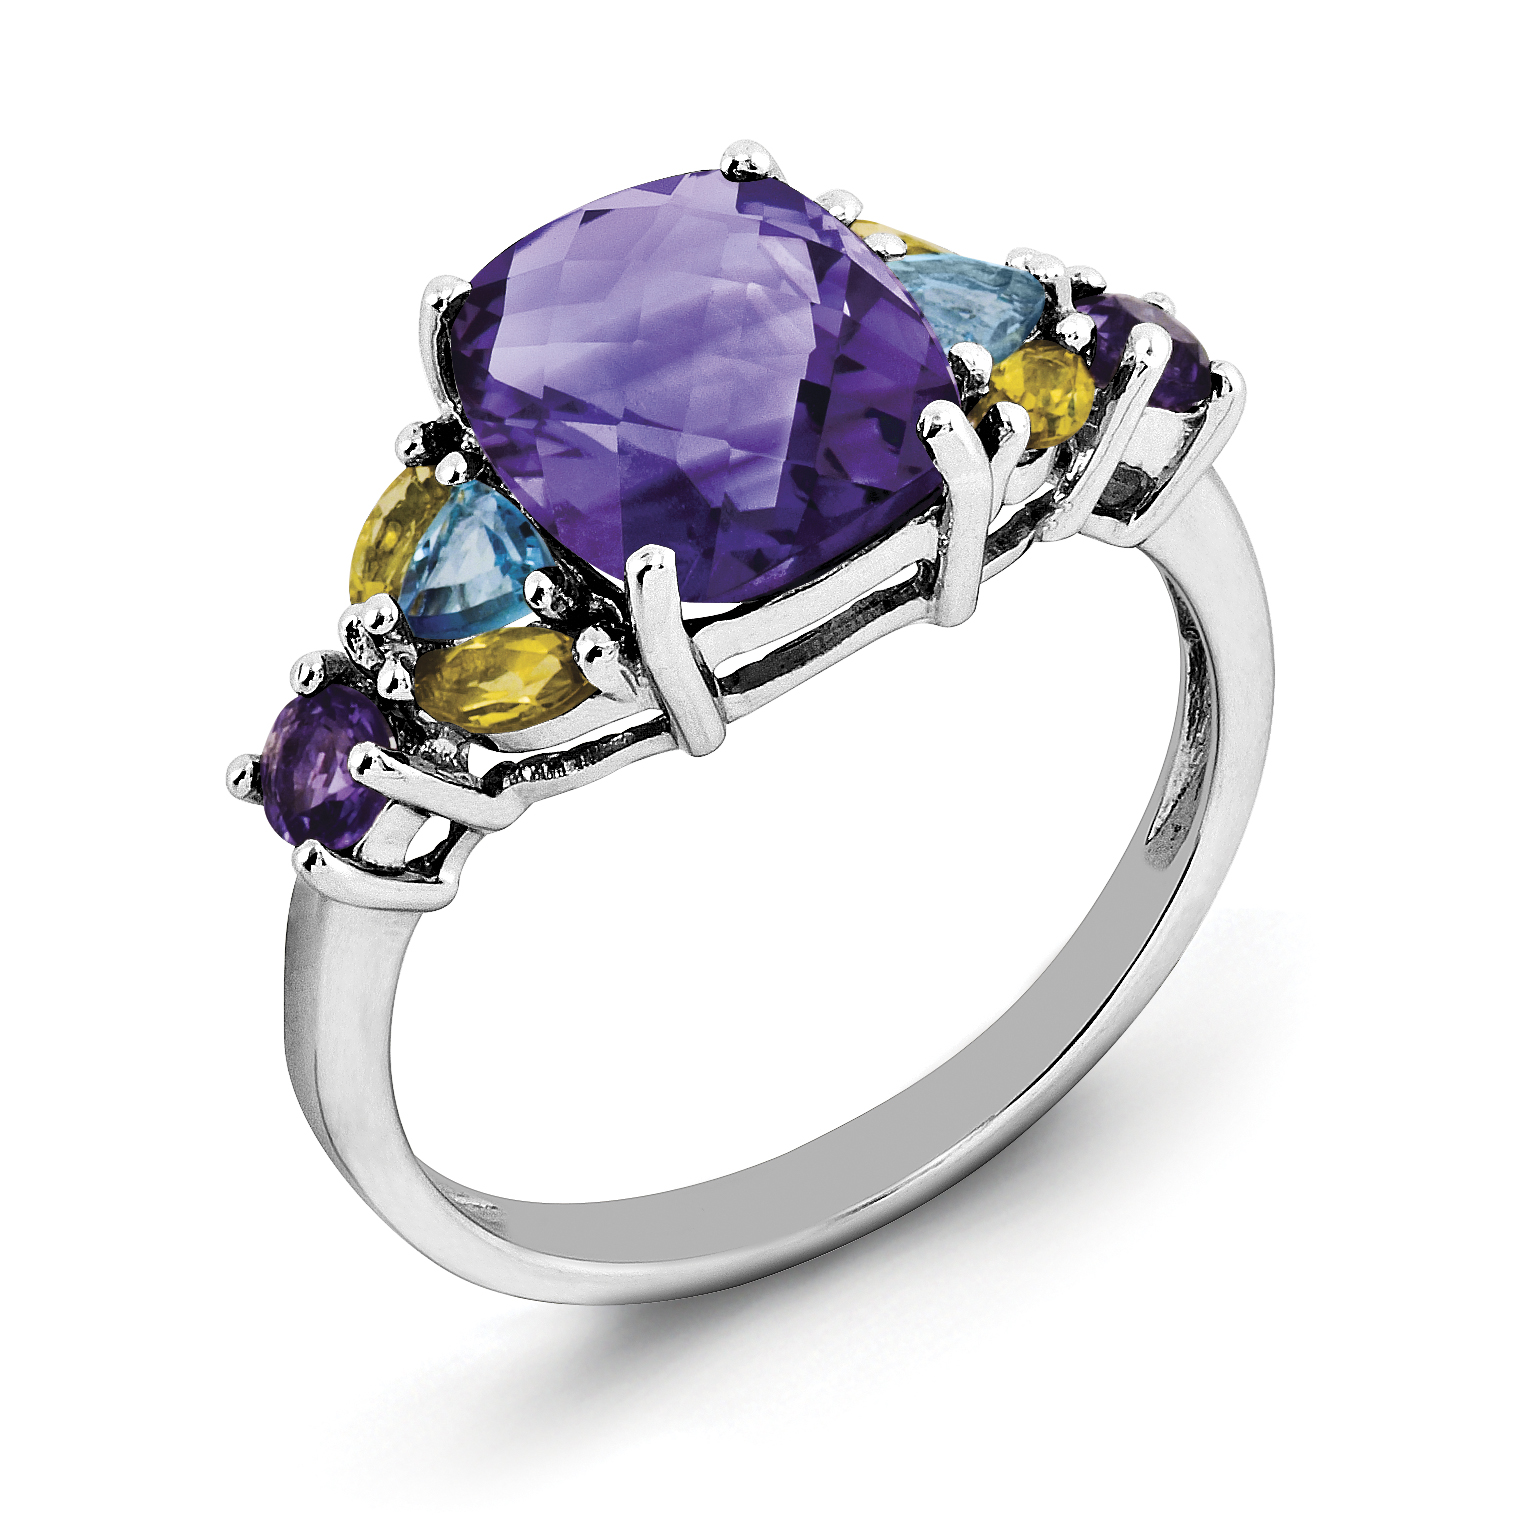 Sterling Silver Rhodium-plated Amethyst, Blue Topaz & Citrine Ring by